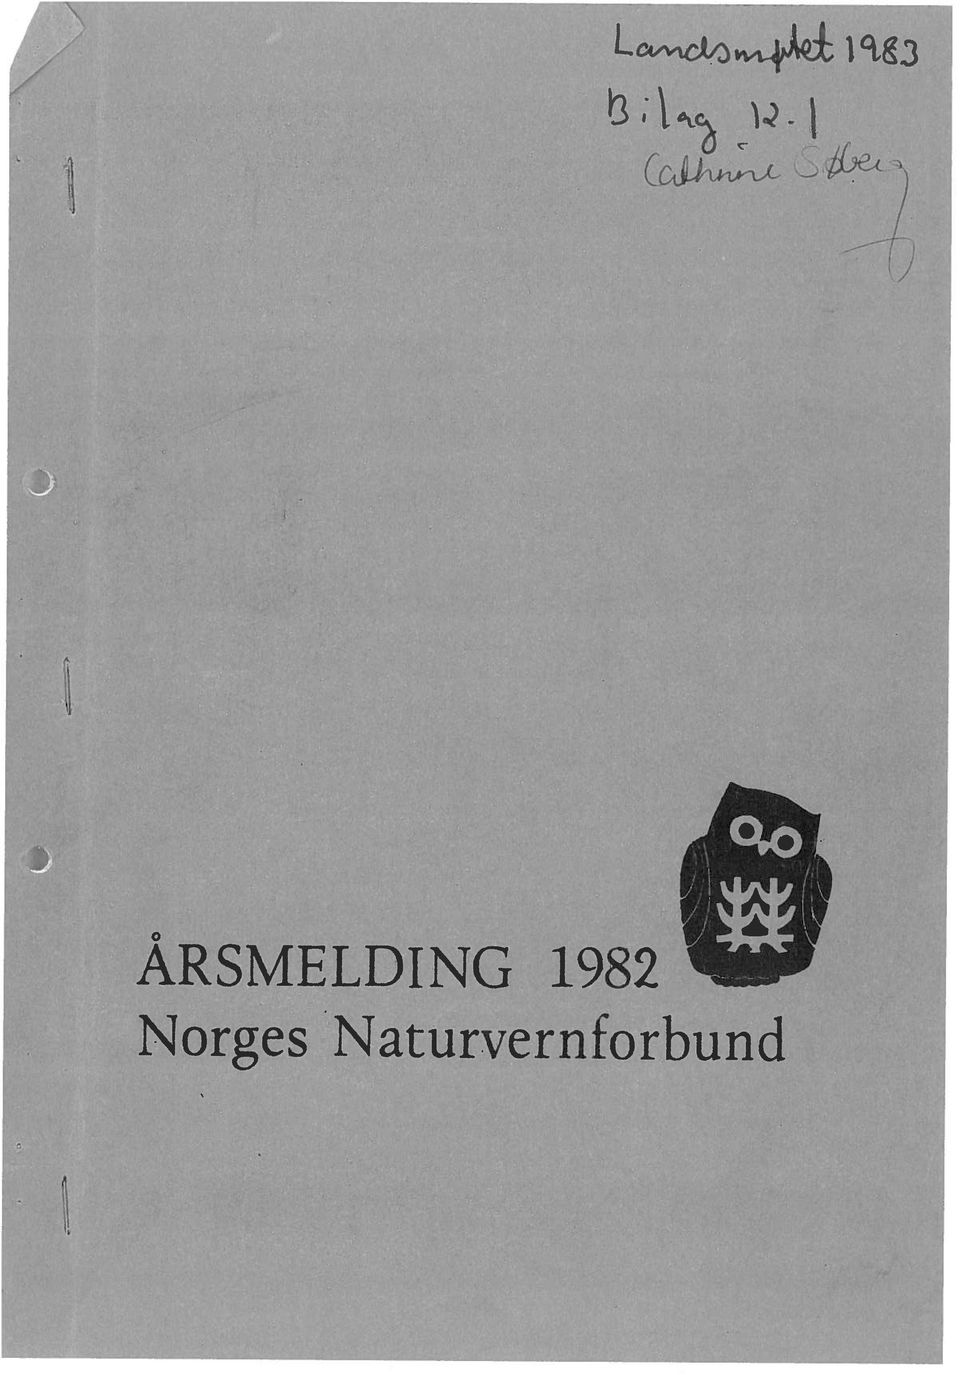 1982 Norges